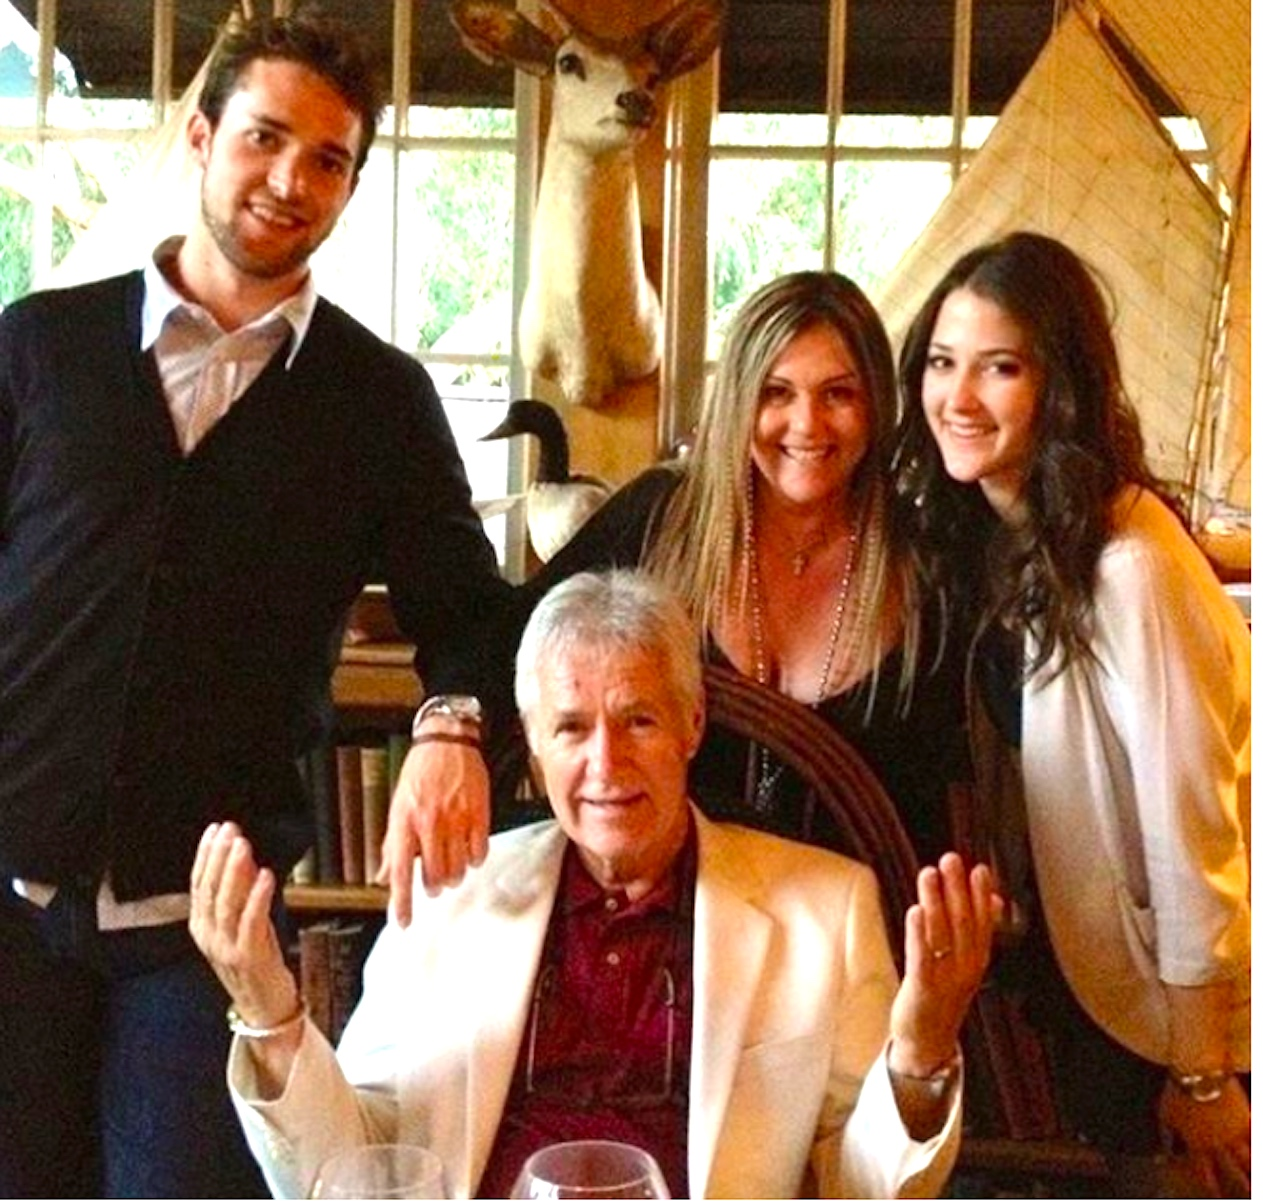 Alex Trebek is pictured having a father's day dinner with his children in their home